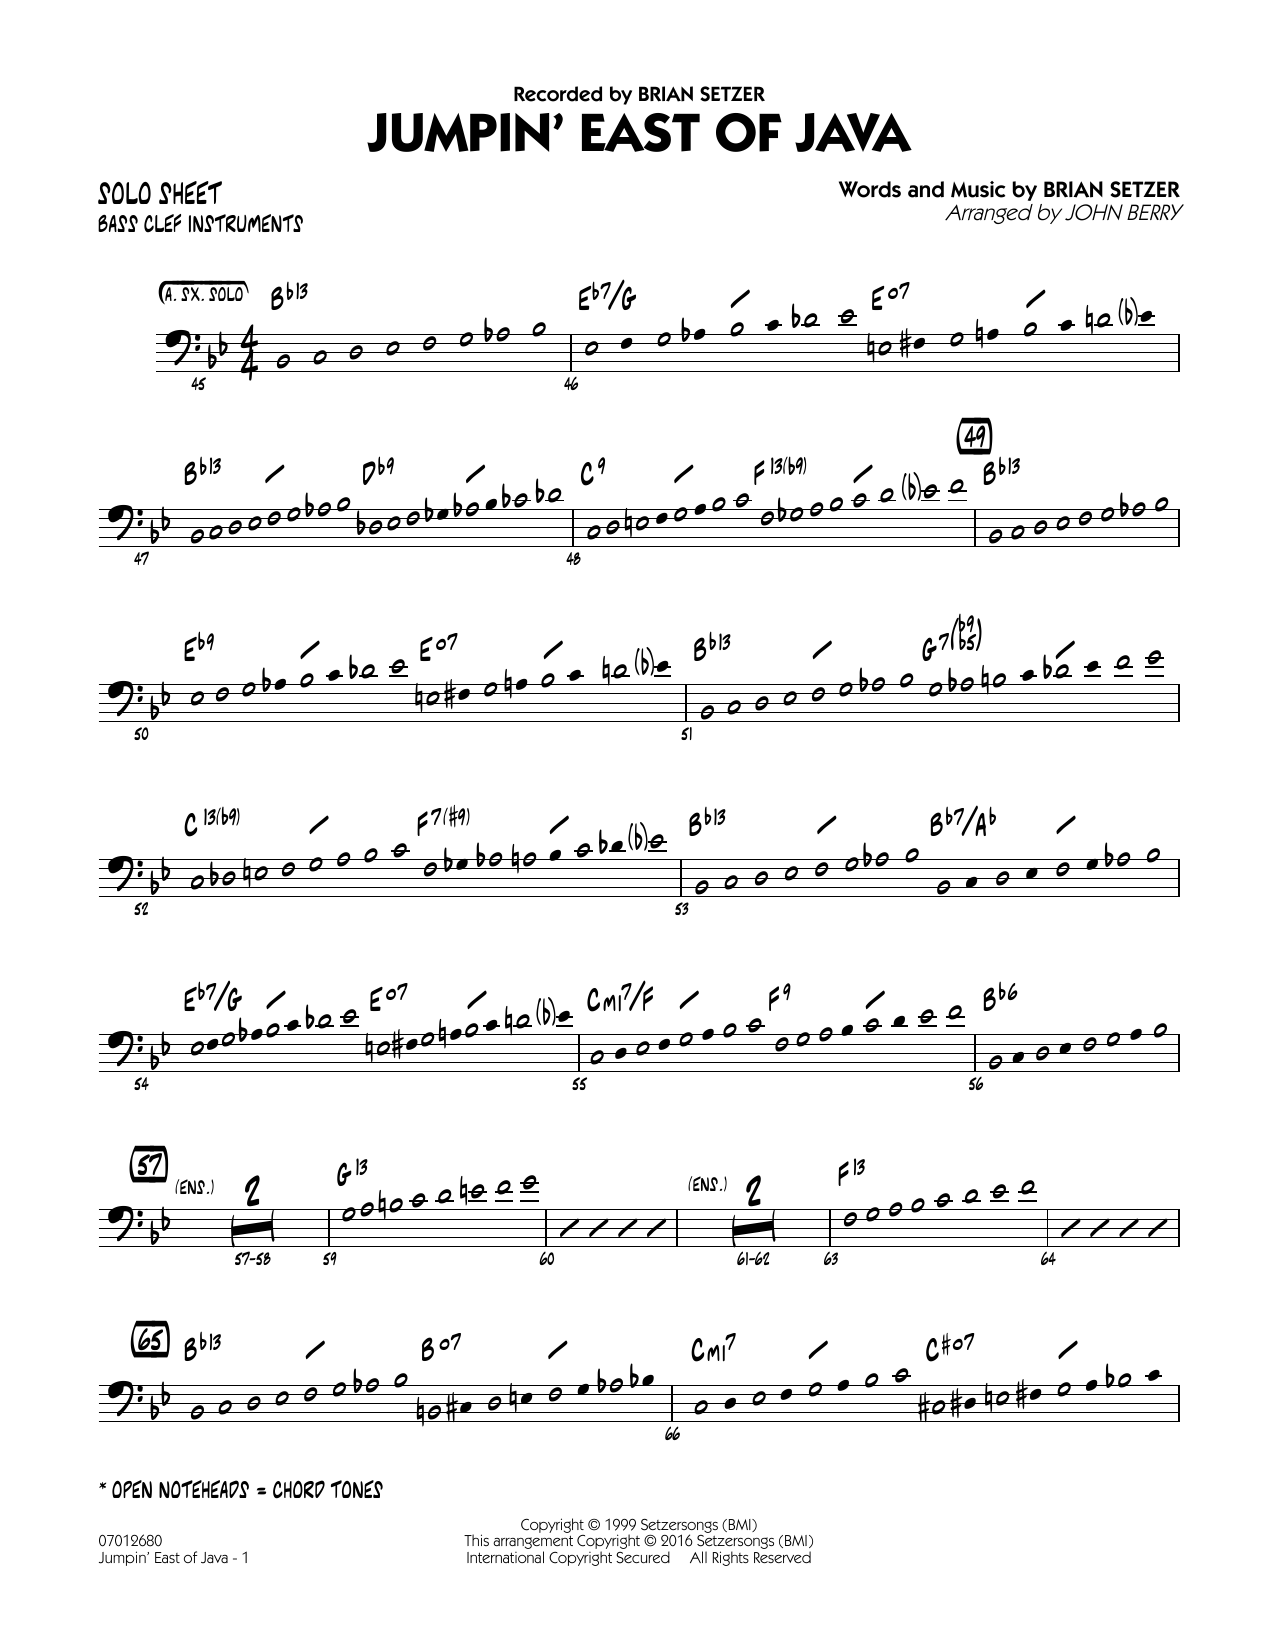 Brian Setzer - Jumpin' East of Java - Bass Clef Solo Sheet